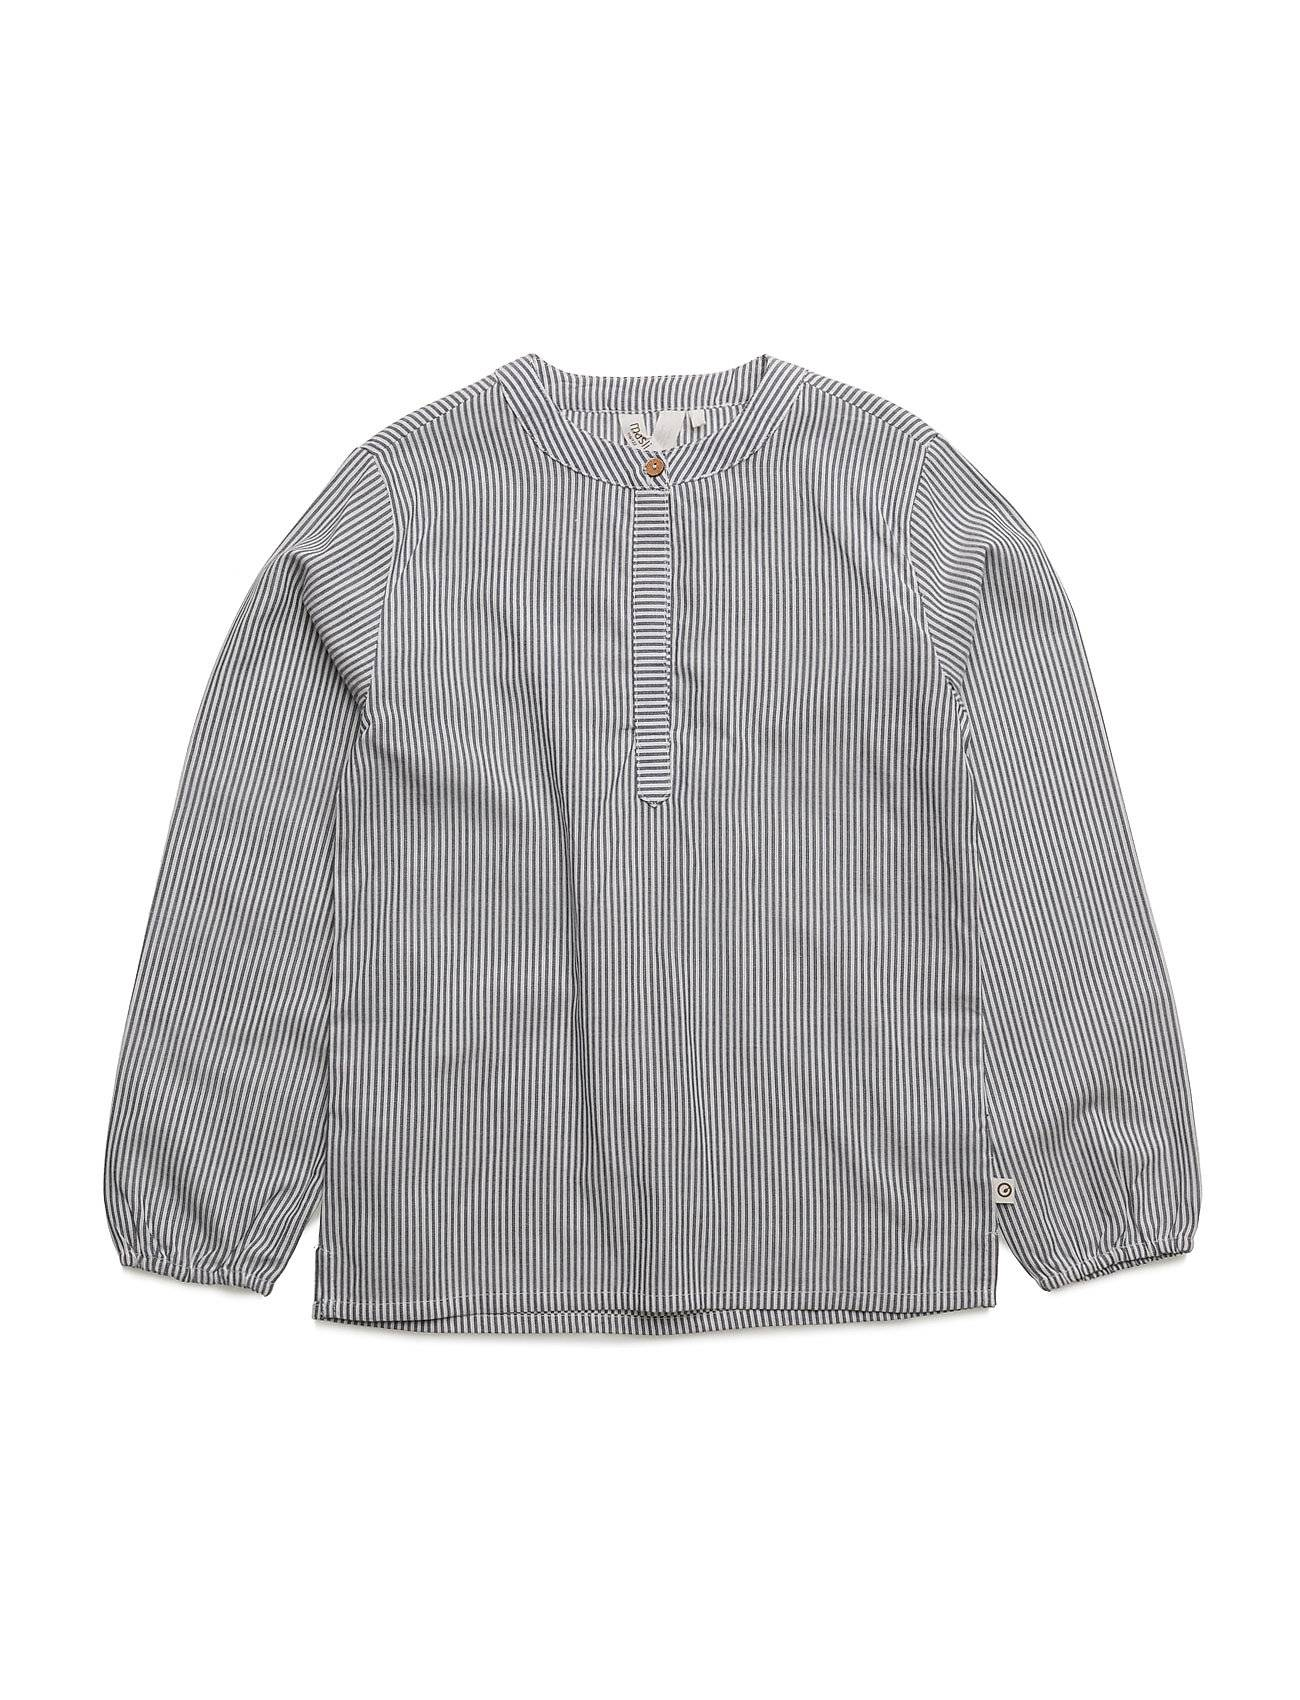 Müsli by Green Cotton Woven Shirt